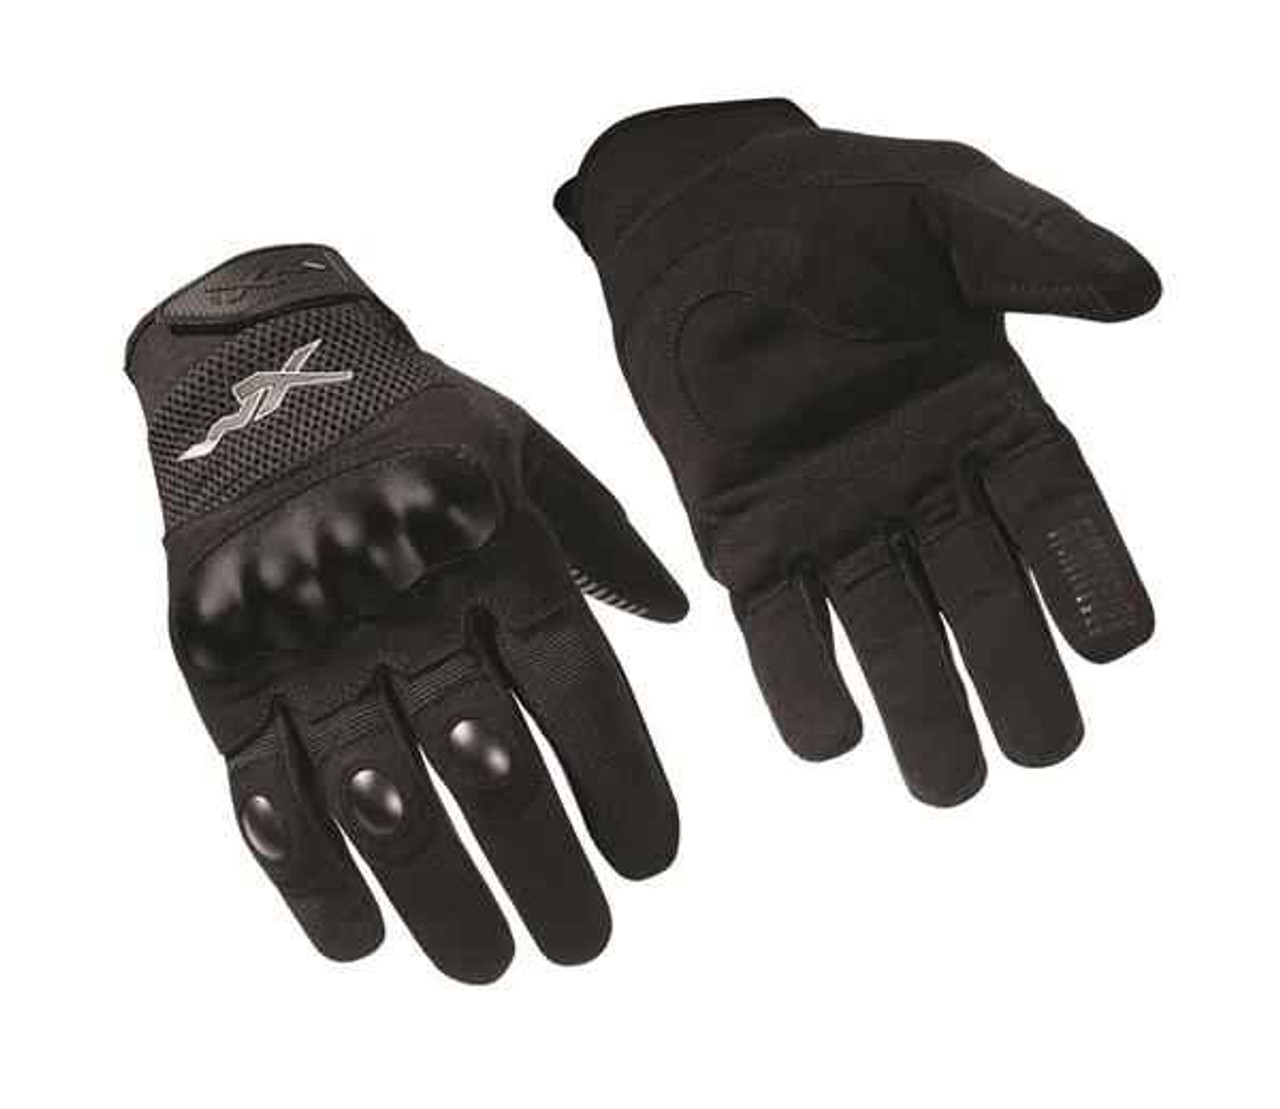 Wiley X Durtac All-Purpose Gloves, Black, Size XL